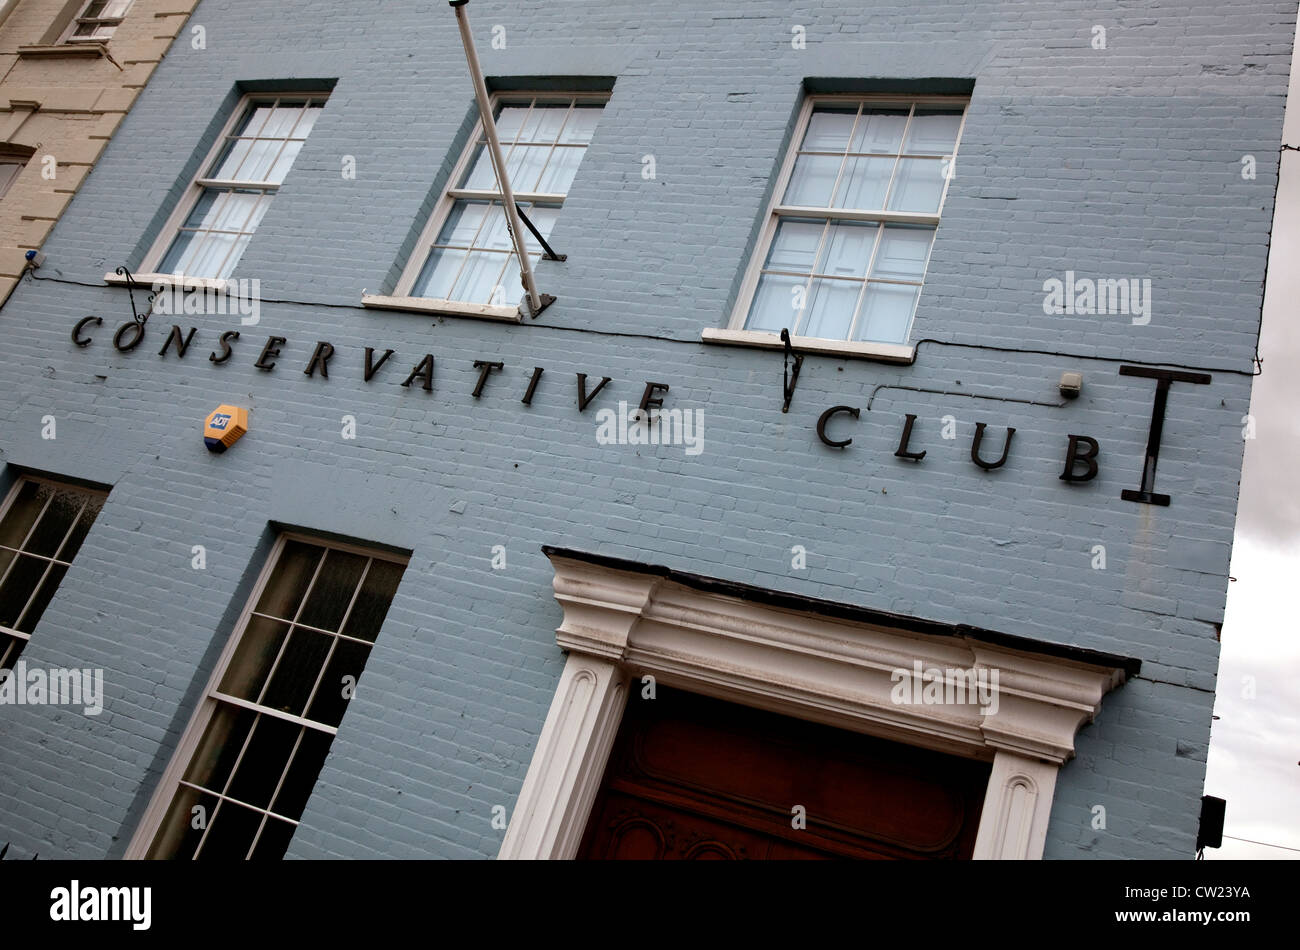 Conservative Club in Wellington, Somerset, England - Stock Image